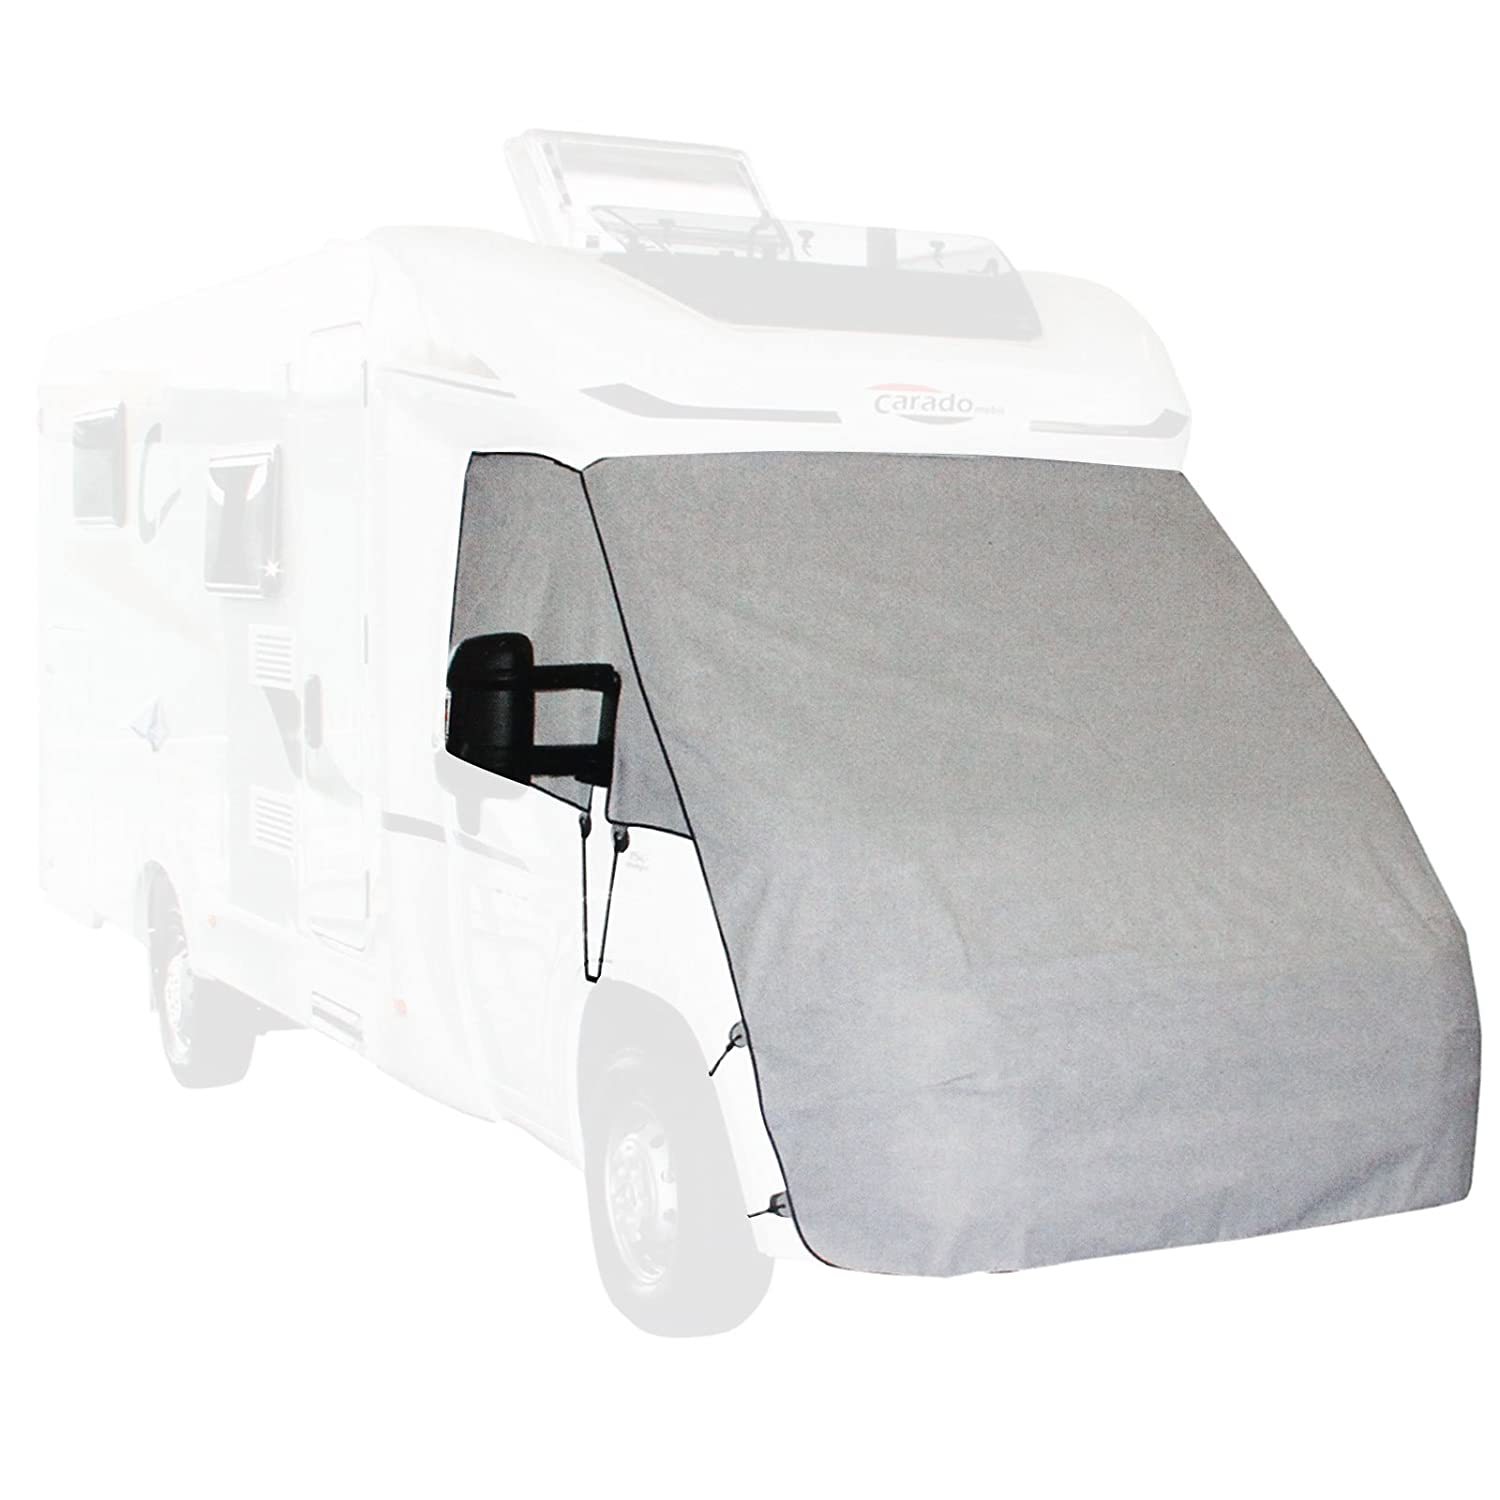 Rubber Straps Nose Protection Front Tarpaulin Panel Van Sprinter 07- Protecting from Frost and Snow